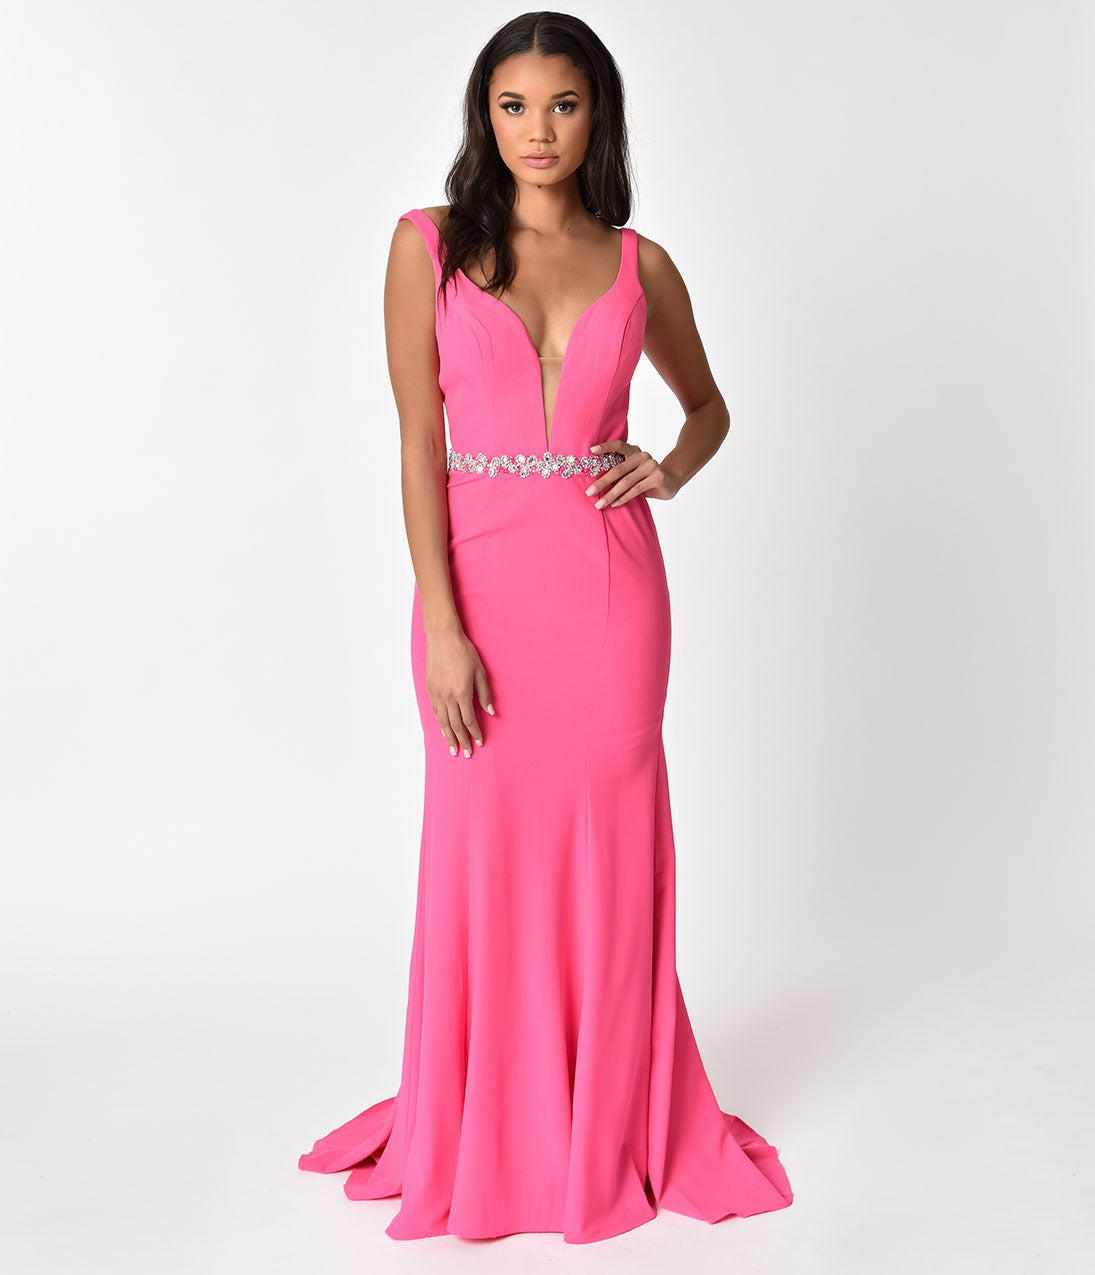 1950s Formal Dresses & Evening Gowns to Buy Hot Pink Sexy Embellished Sleeveless Sweetheart Long Dress $180.00 AT vintagedancer.com